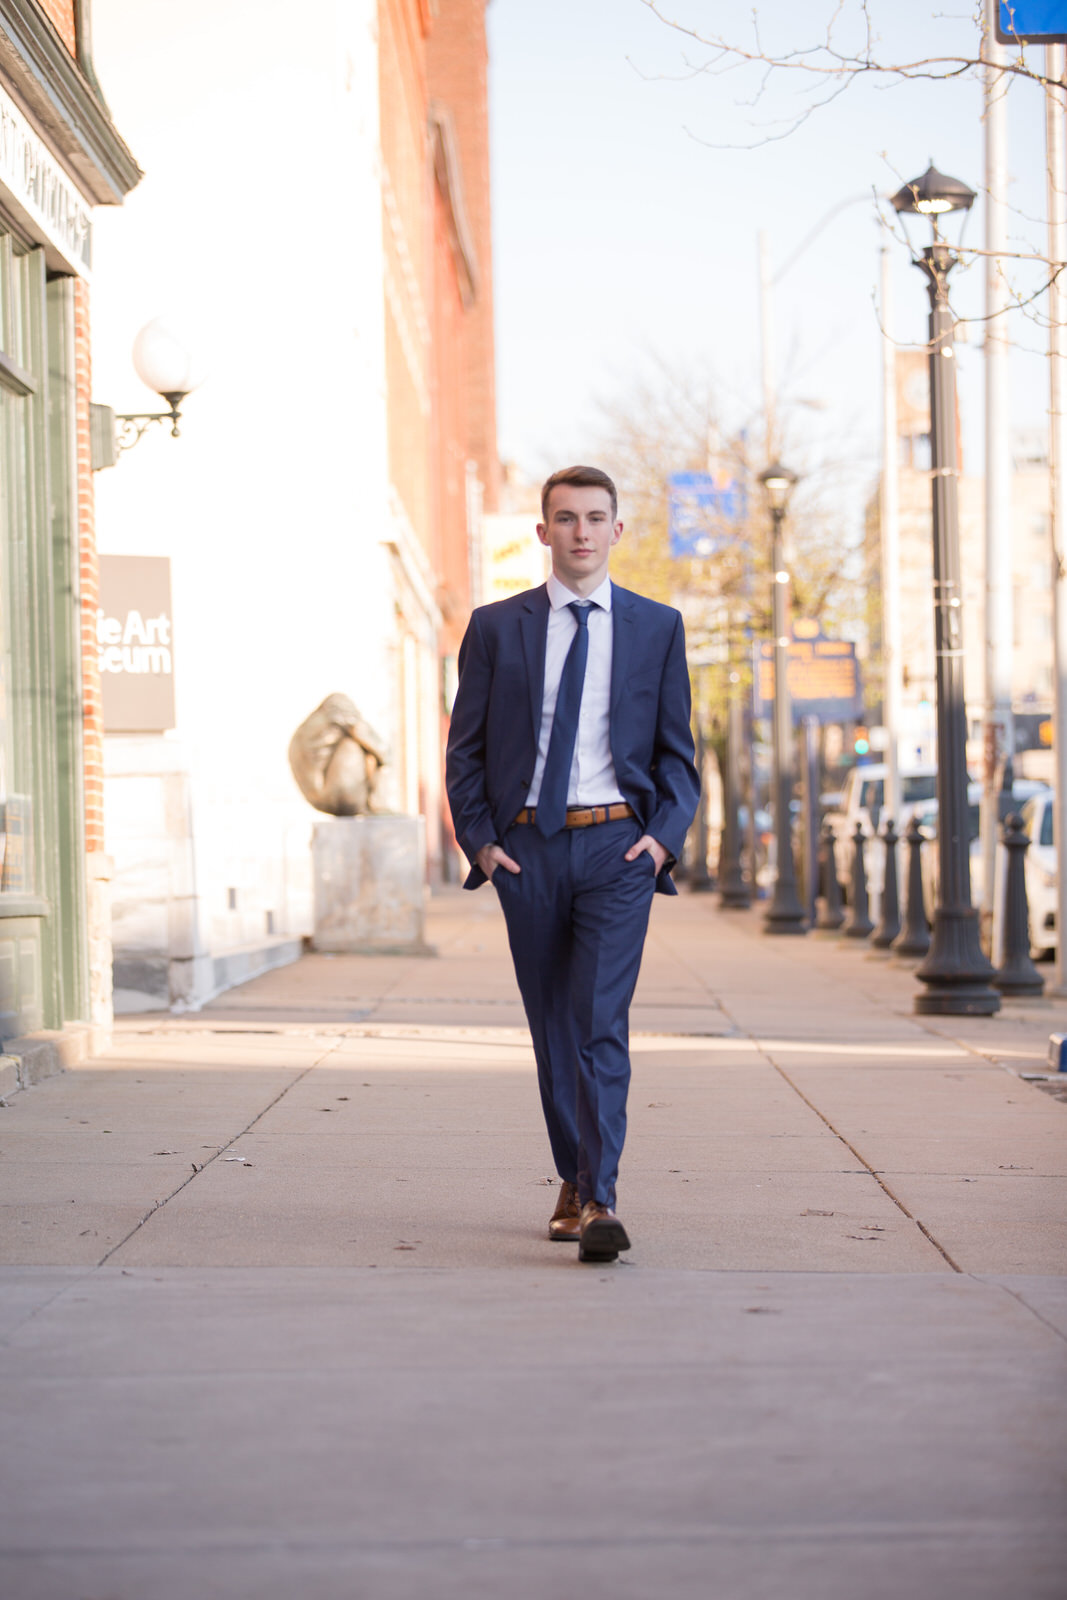 Boy in suit walks down the street for senior portraits in Erie, PA